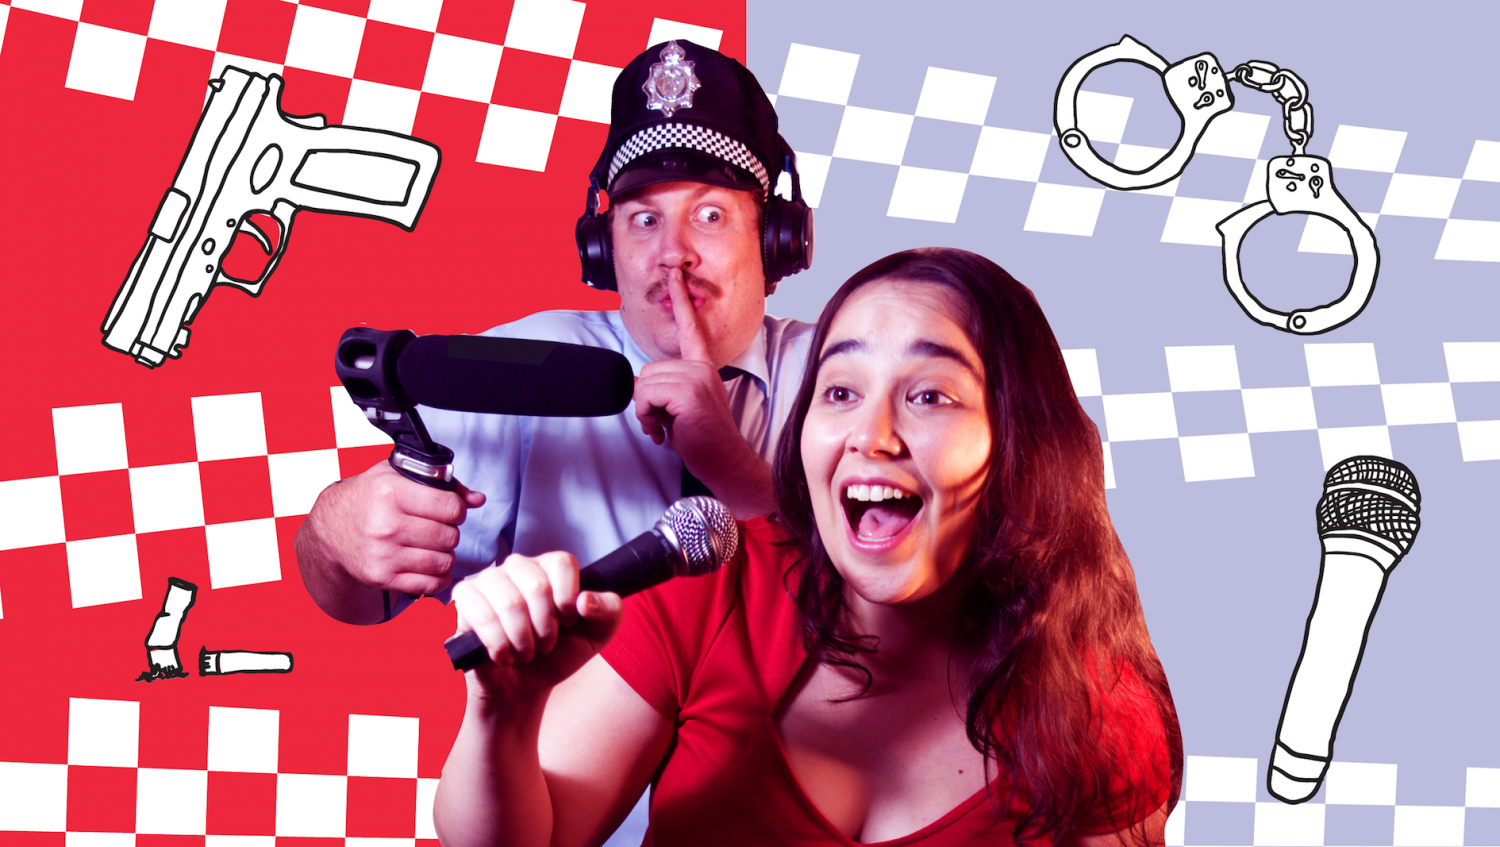 Undercover Festival Cops, MICF, On The List, On The List Melbourne